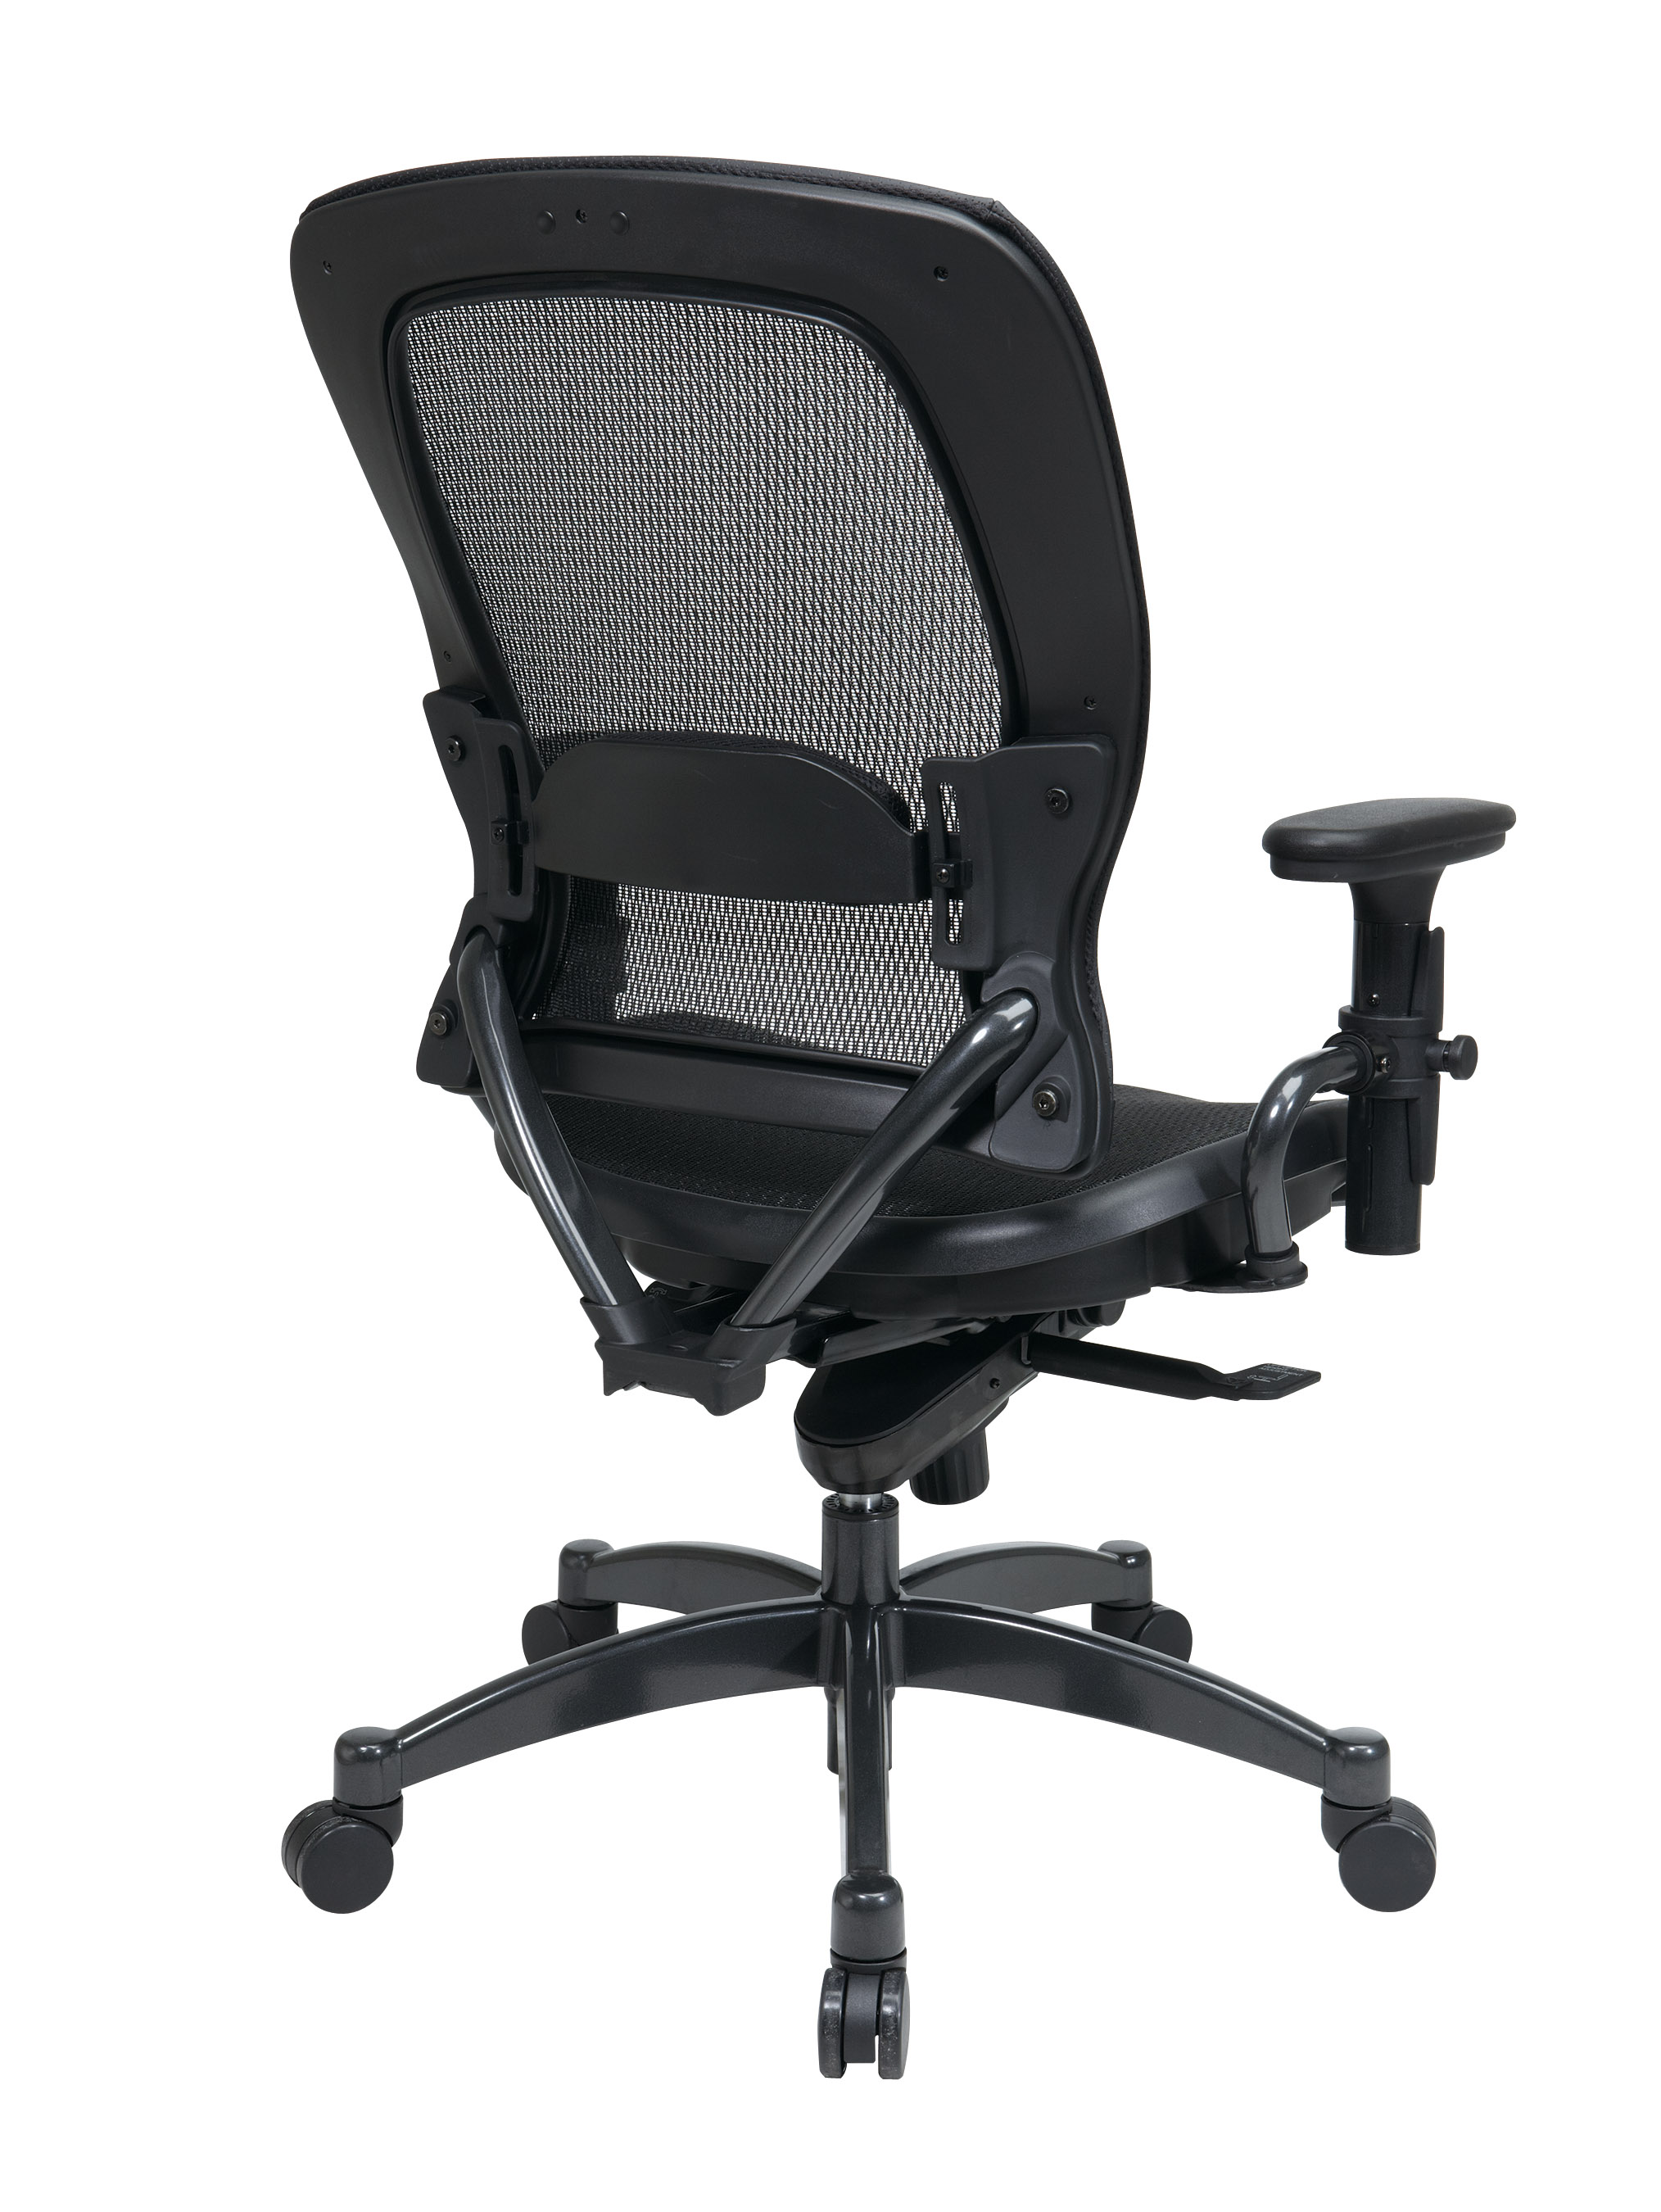 Black Breathable Mesh Chair Back - Professional Black Breathable Mesh Chair